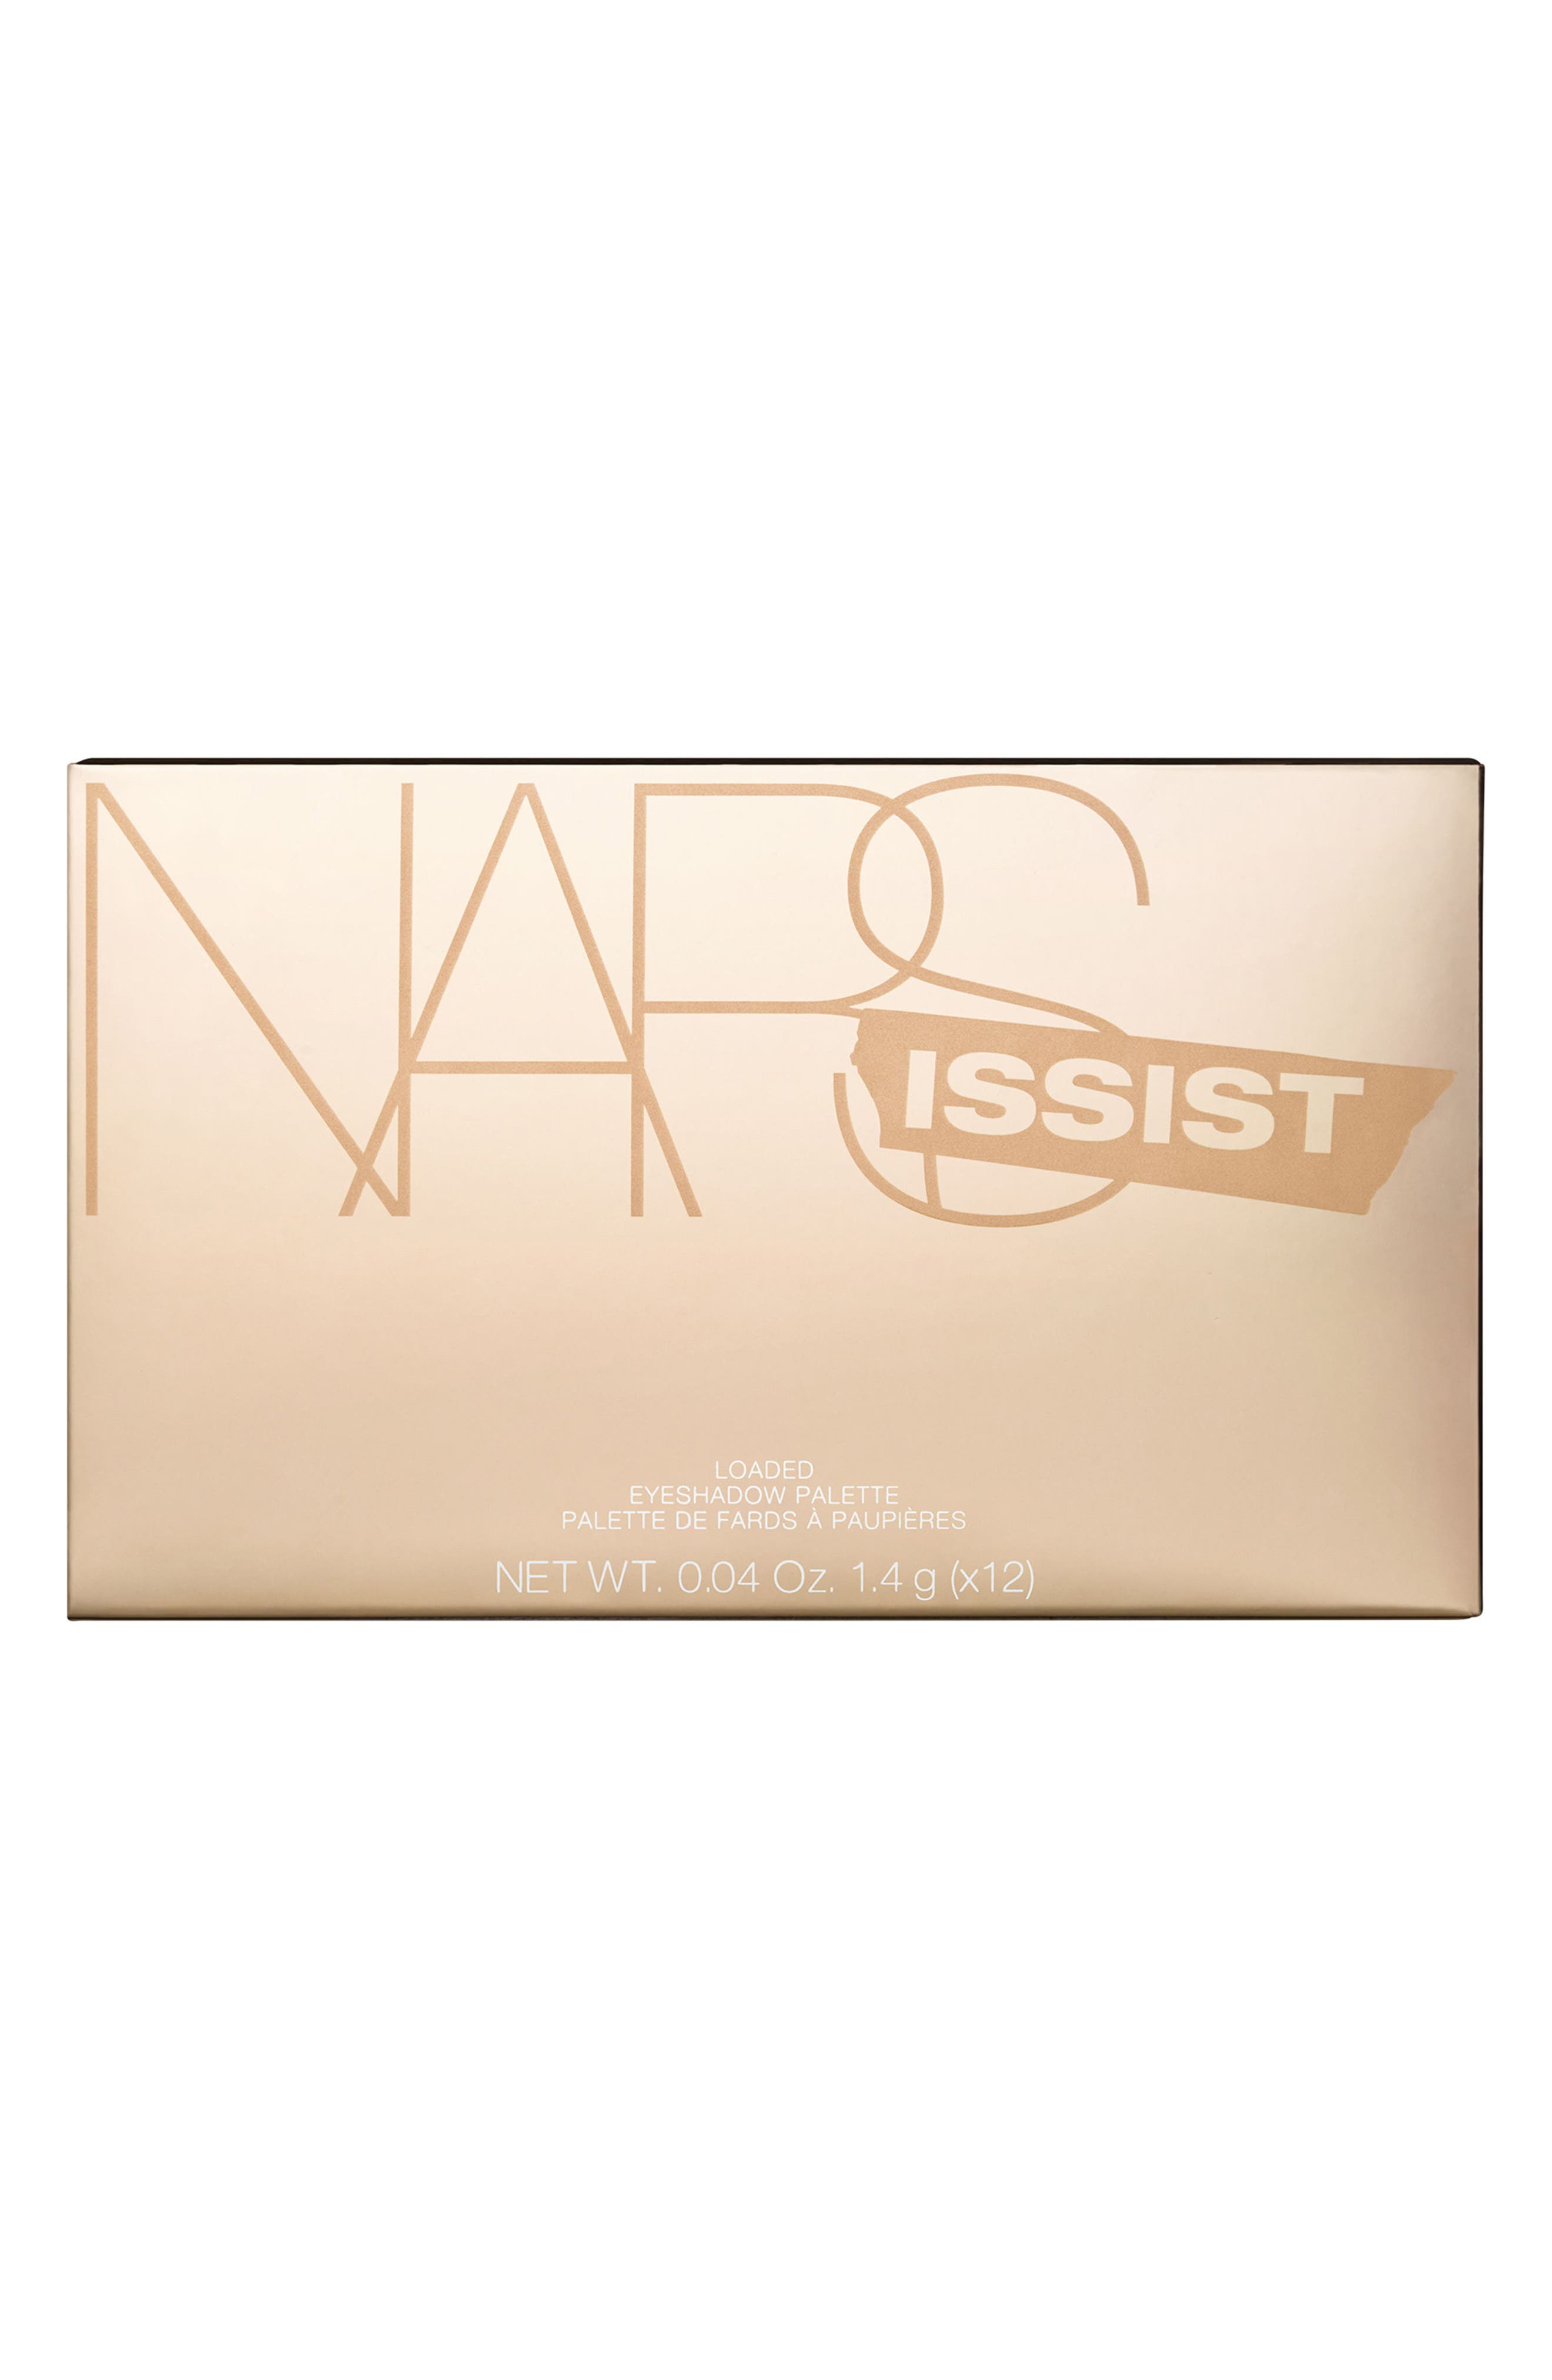 NARSissist Loaded Eyeshadow Palette,                             Alternate thumbnail 8, color,                             No Color